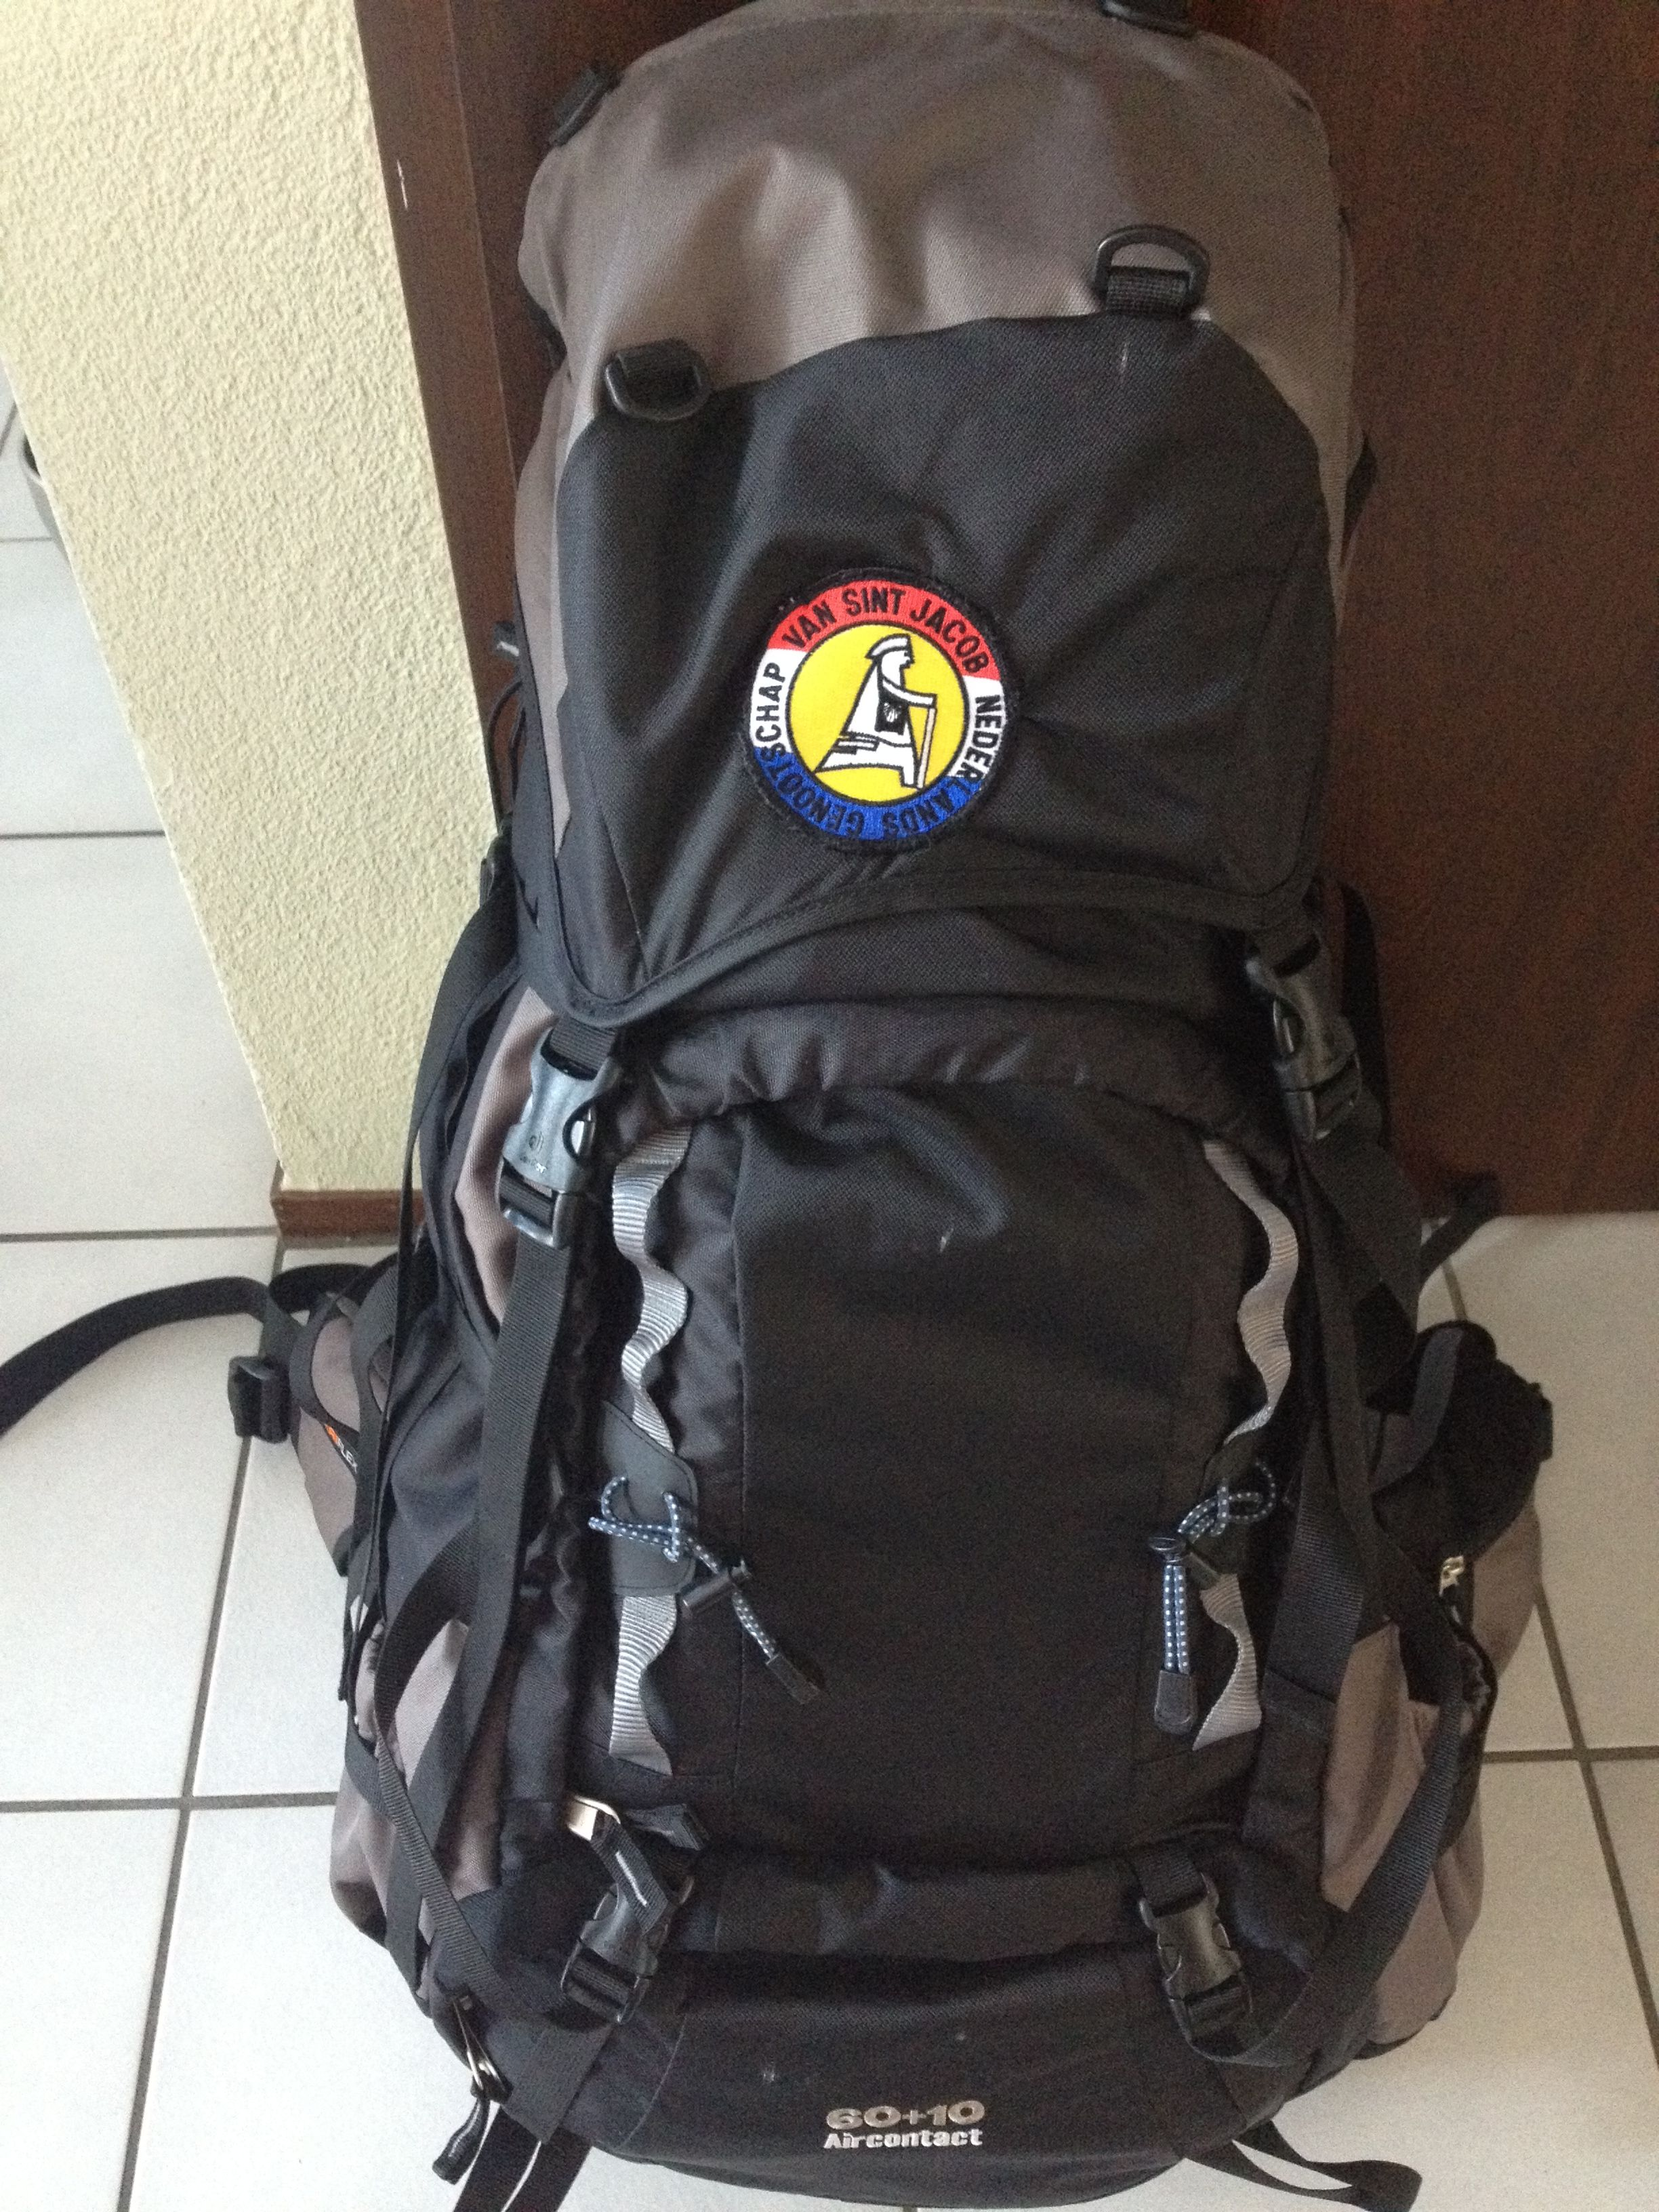 I started with a backpack weighing 12 kilo's but I brought it down to 10 kg; including water.